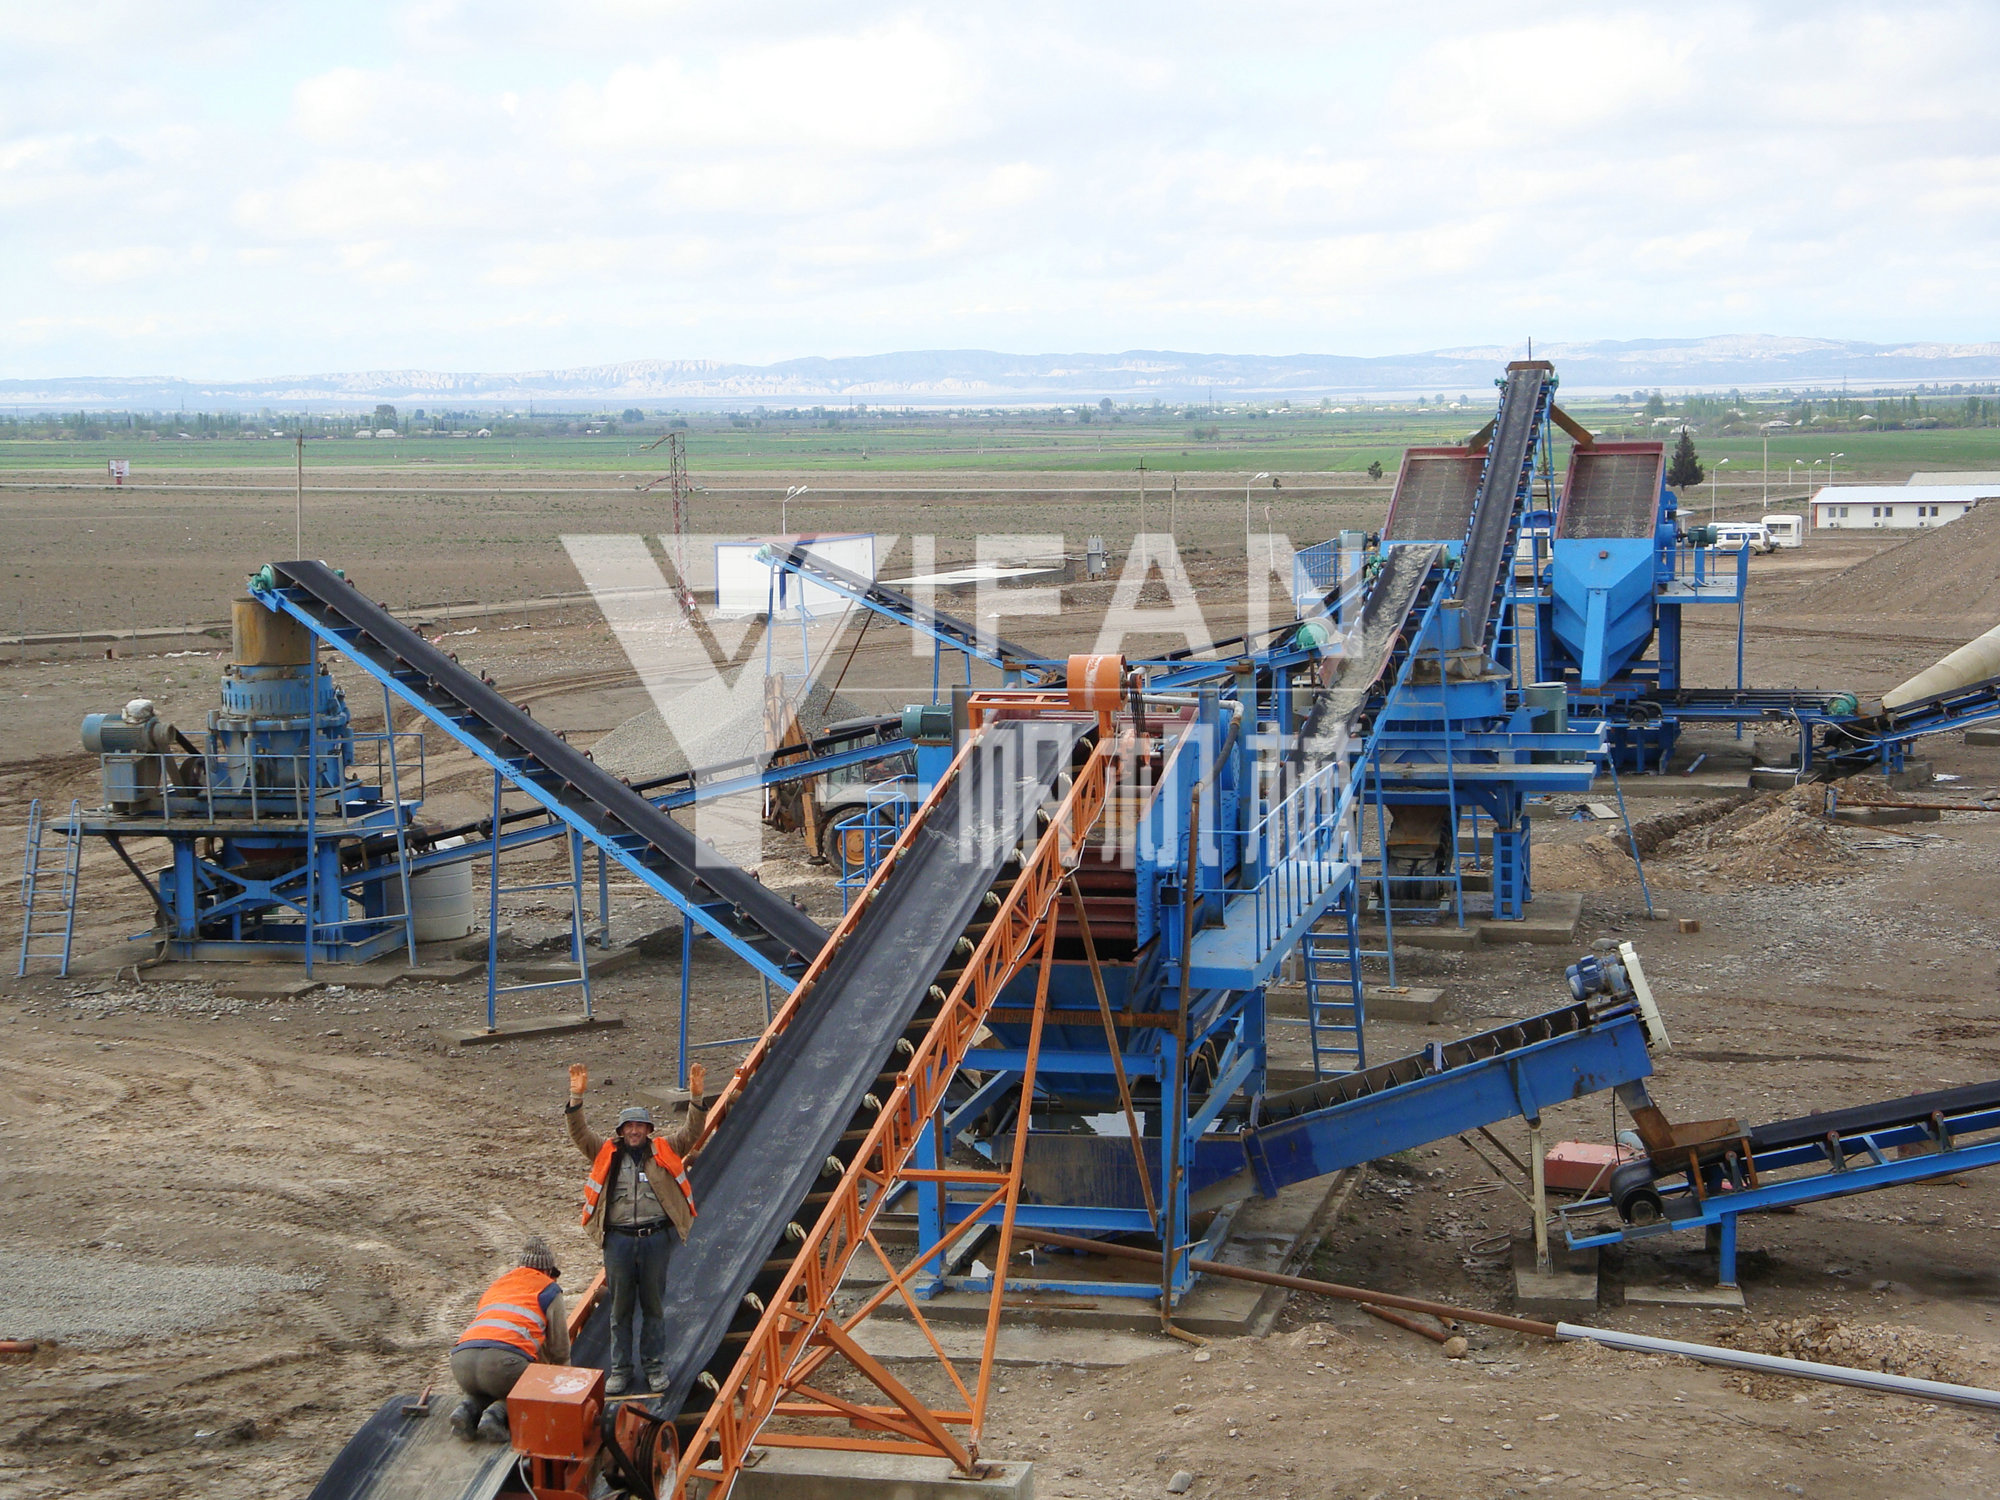 Yifan Machinery for customers to design the most economical and reasonable stone production line solutions